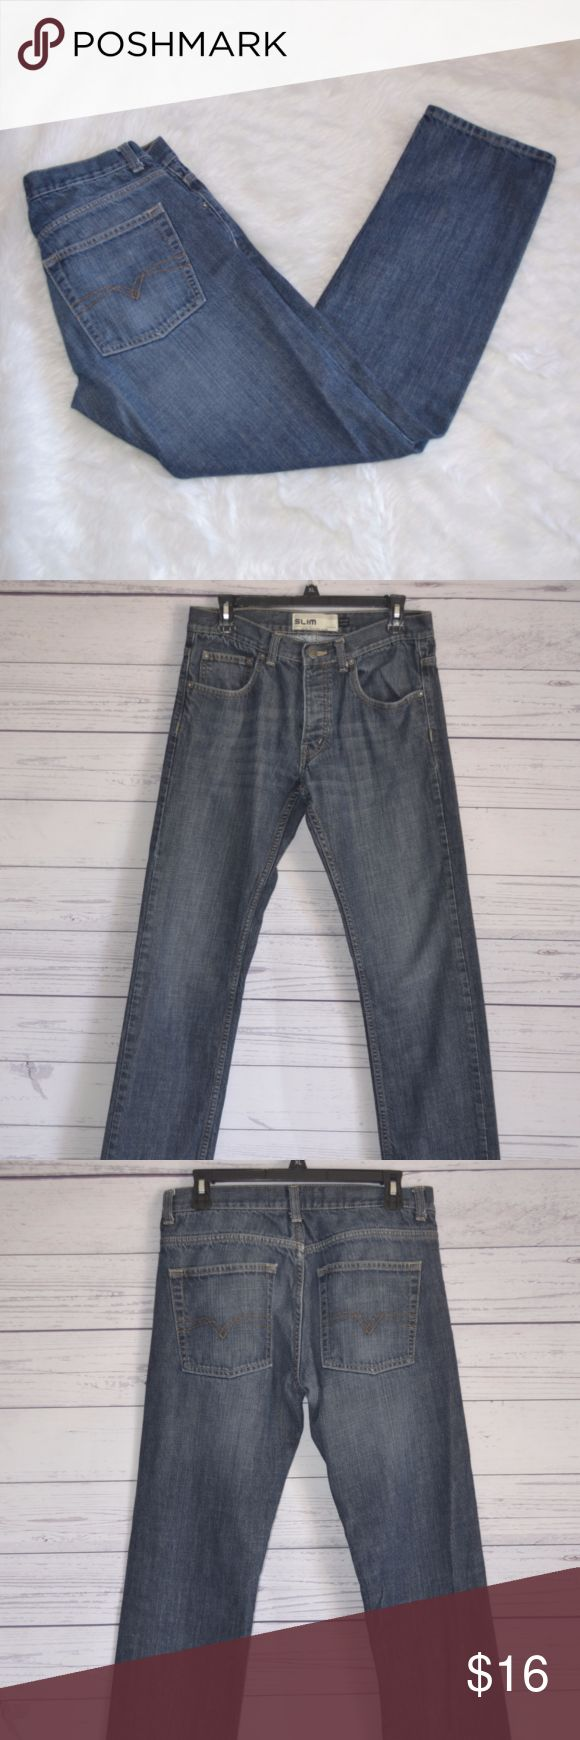 "Topman Mens Blue Jean Denim Pants Size 32 Regular Brand: Topman Condition: Good condition Color: Blue Materials: 100% Cotton Origin: India Size: 32R Features: Slim to fit   Measurements: Waist (laid flat & doubled): 32 Rise: 9.25"" Hips: 22.5"" Thigh: 10"" Outseam (waist to hem): 40"" Inseam: 31 Leg Opening: 7.5""  *Measurements are all approximate. Topman Jeans Straight"